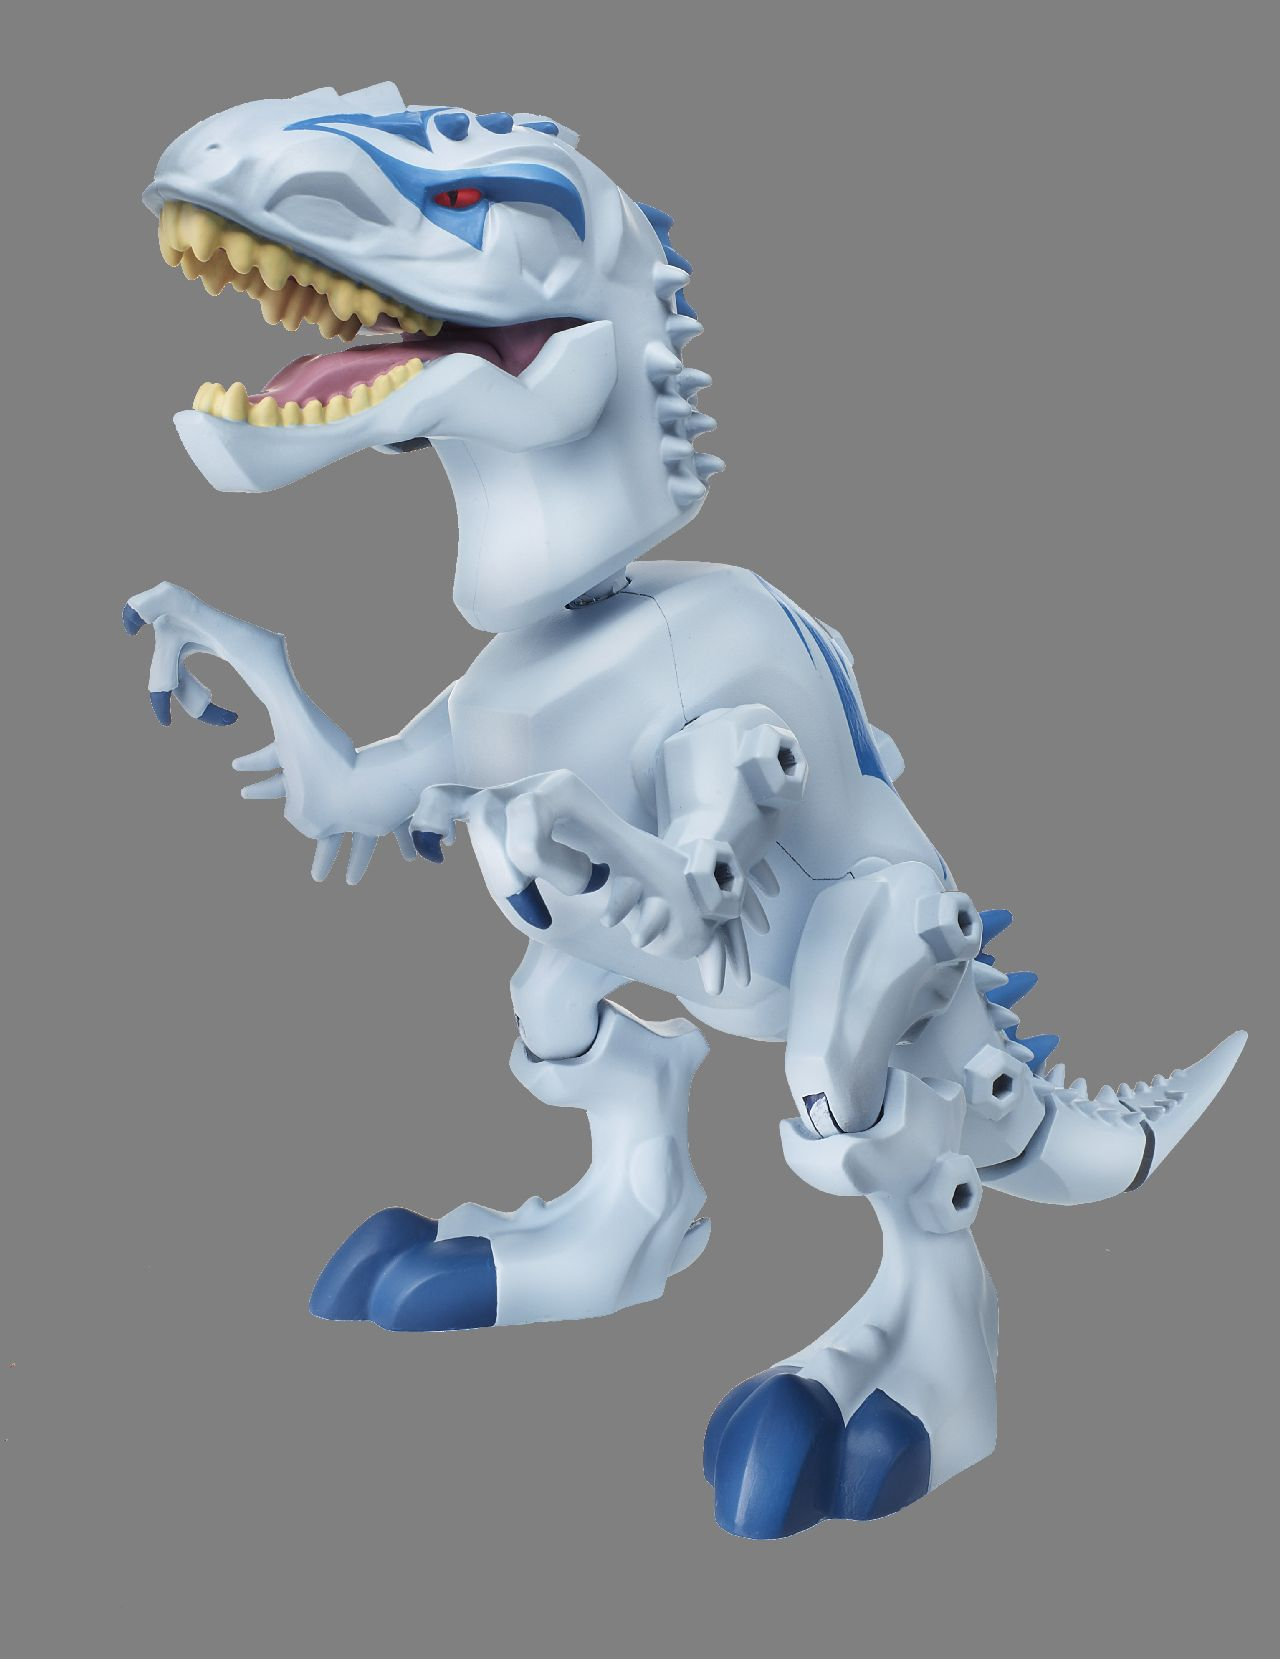 Check Out Hasbro's Jurassic World Toys, Including the